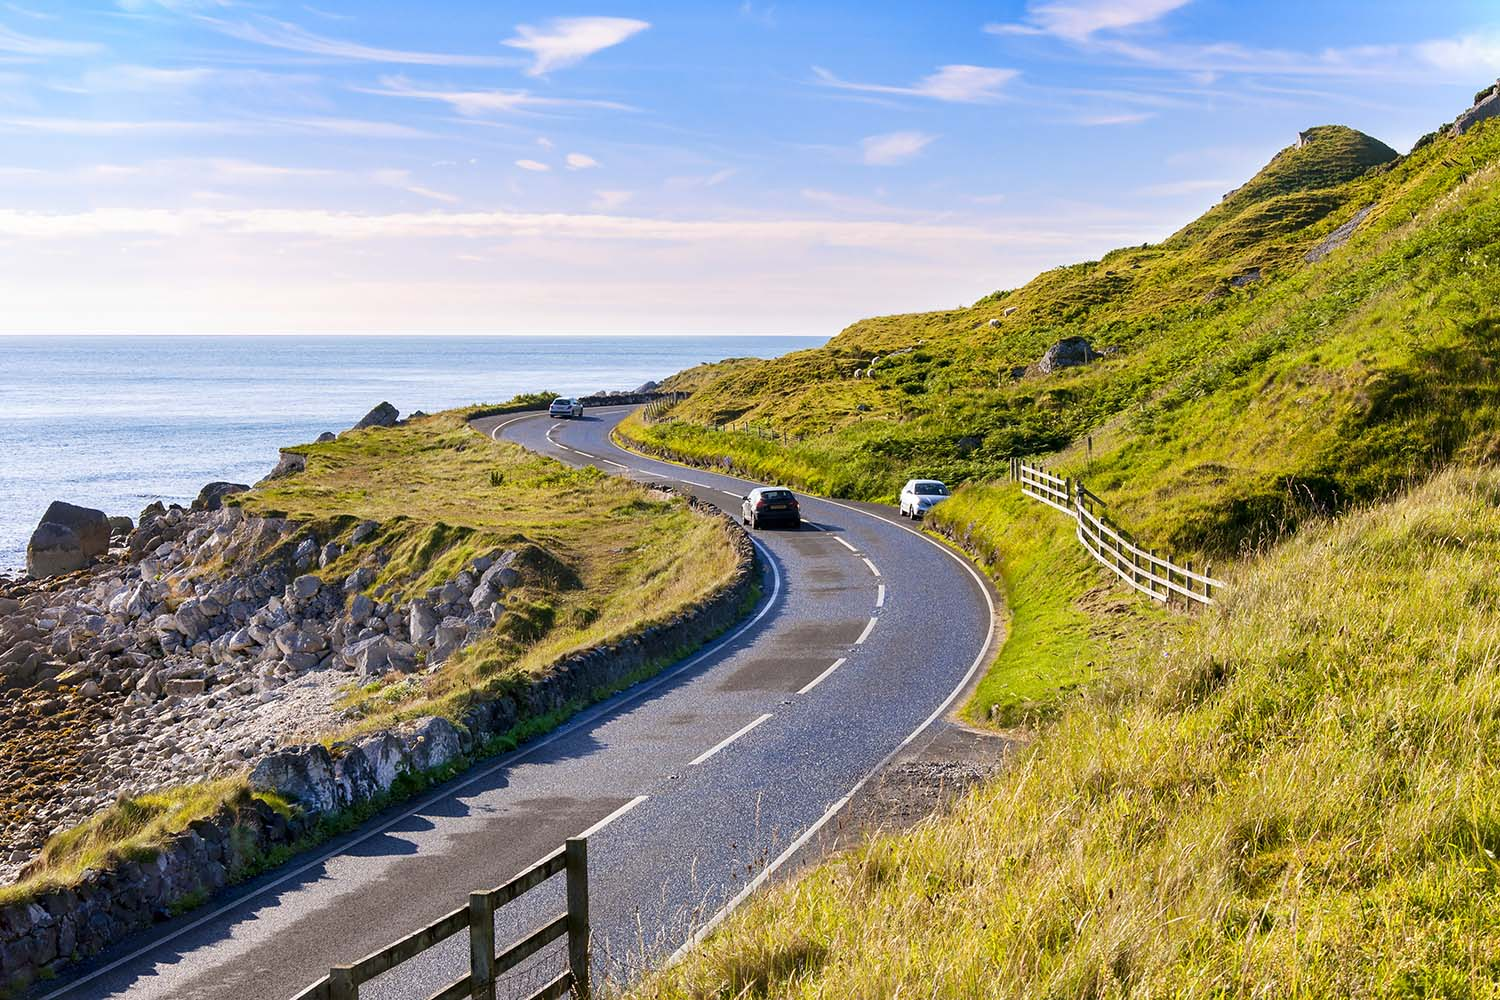 The eastern coast of Northern Ireland and Antrim Coastal road with cars